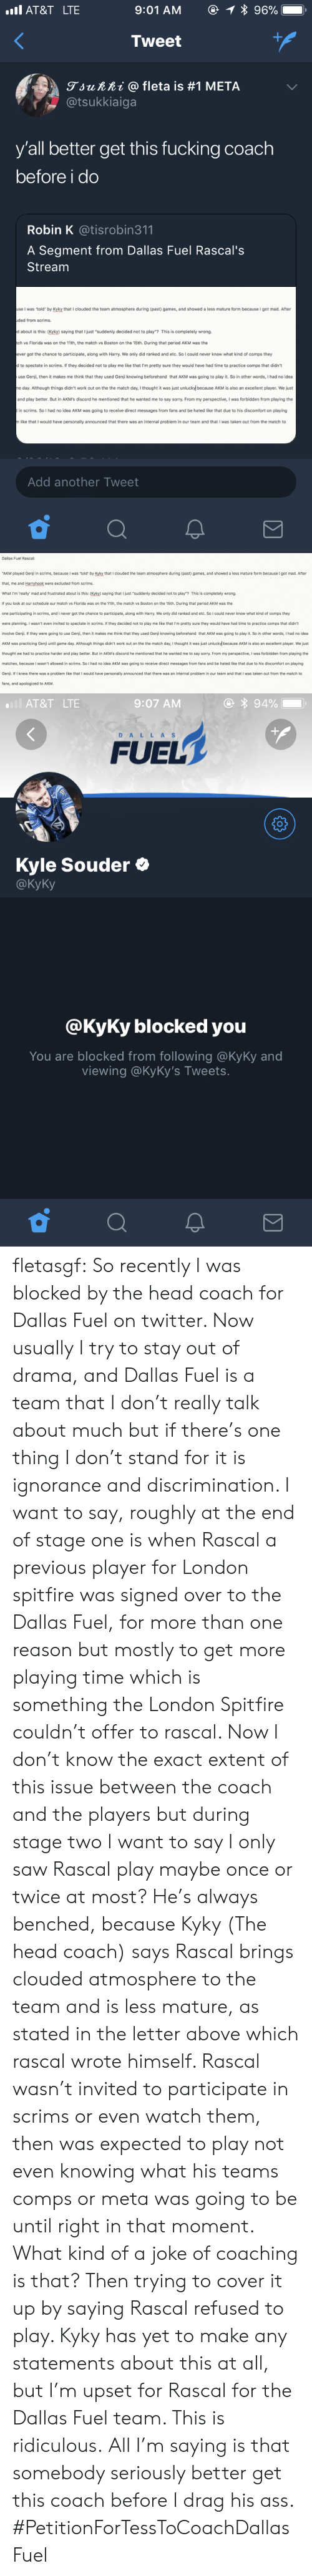 """Ass, Fucking, and Head: AT&T LTE  Tweet  gjunni @ fleta is #1 META  @tsukkiaiga  y'all better get this fucking coach  before i do  Robin K @tisrobin311  A Segment from Dallas Fuel Rascal's  Stream  se I was 'told by Kyky that I clouded the team atmosphere during (past) games, and showed a less mature form because I got mad. After  ded from scrims.  d about is this: (Kyky) saying that I just """"suddenly decided not to play""""? This is completely wrong.  ch vs Florida was on the 11th, the match vs Boston on the 15th. During that period AKM was the  ever got the chance to participate, along with Harry. We only did ranked and etc. So I could never know what kind of comps they  to spectate in scrims. If they decided not to play me like that I'm pretty sure they would have had time to practice comps that didn't  use Genji, then it makes me think that they used Genji knowing beforehand that AKM was going to play it. So in other words, I had no idea  e day. Although things didn't work out on the the match day, I thought it was just unlucky)because AKM is also an excellent player. We just  and play better. But in AKM's discord he mentioned that he wanted me to say sorry. From my perspective, I was forbidden from playing the  in scrims. So I had no idea AKM was going to receive direct messages from fans and be hated like that due to his discomfort on playing  like that I would have personally announced that there was an internal problem in our team and that I was taken out from the match to  Add another Tweet   Dallas Fuel Rascal  """"AKM played Genj in scrims, because I was 'told' by Kyky that I clouded the team atmosphere during (past) games, and showed a less mature form because I got mad. After  that, me and Harryhook were excluded from scrims.  What I'm 'really mad and frustrated about is this: (Kyky) saying that I just """"suddenly decided not to play""""? This is completely wrong  If you look at our schedule our match vs Florida was on the 11th, the match vs Boston on the 15th. Dur"""